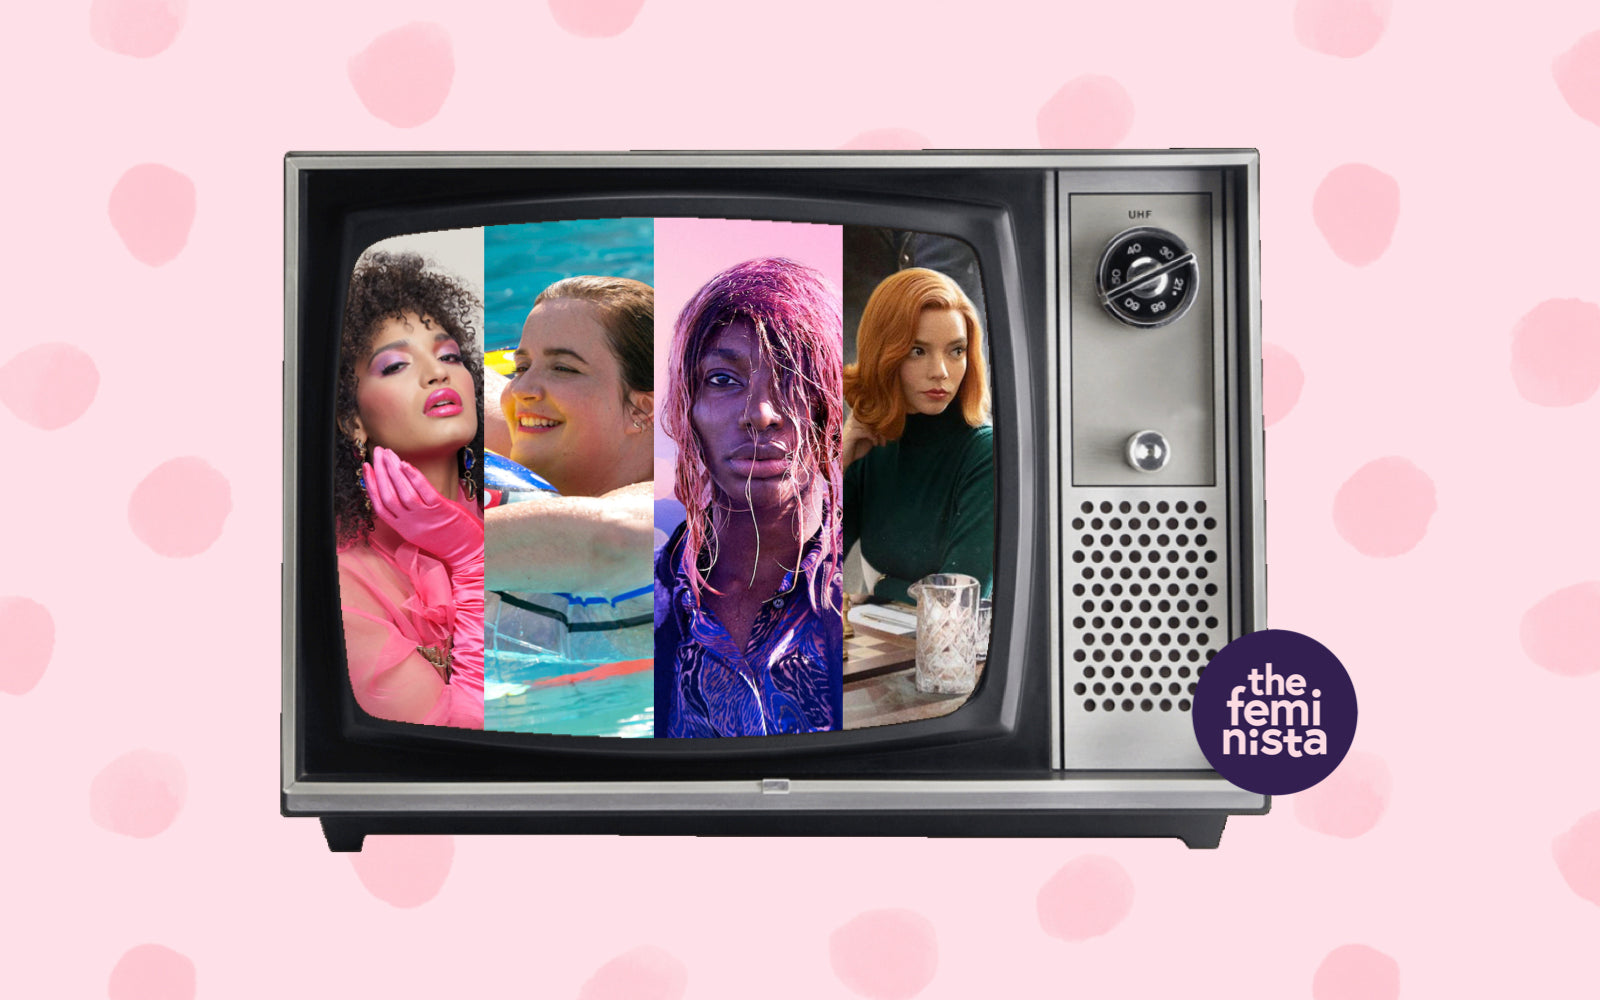 13 feminist tv shows to binge this spring, depicted on an old television on a pink polka dot background